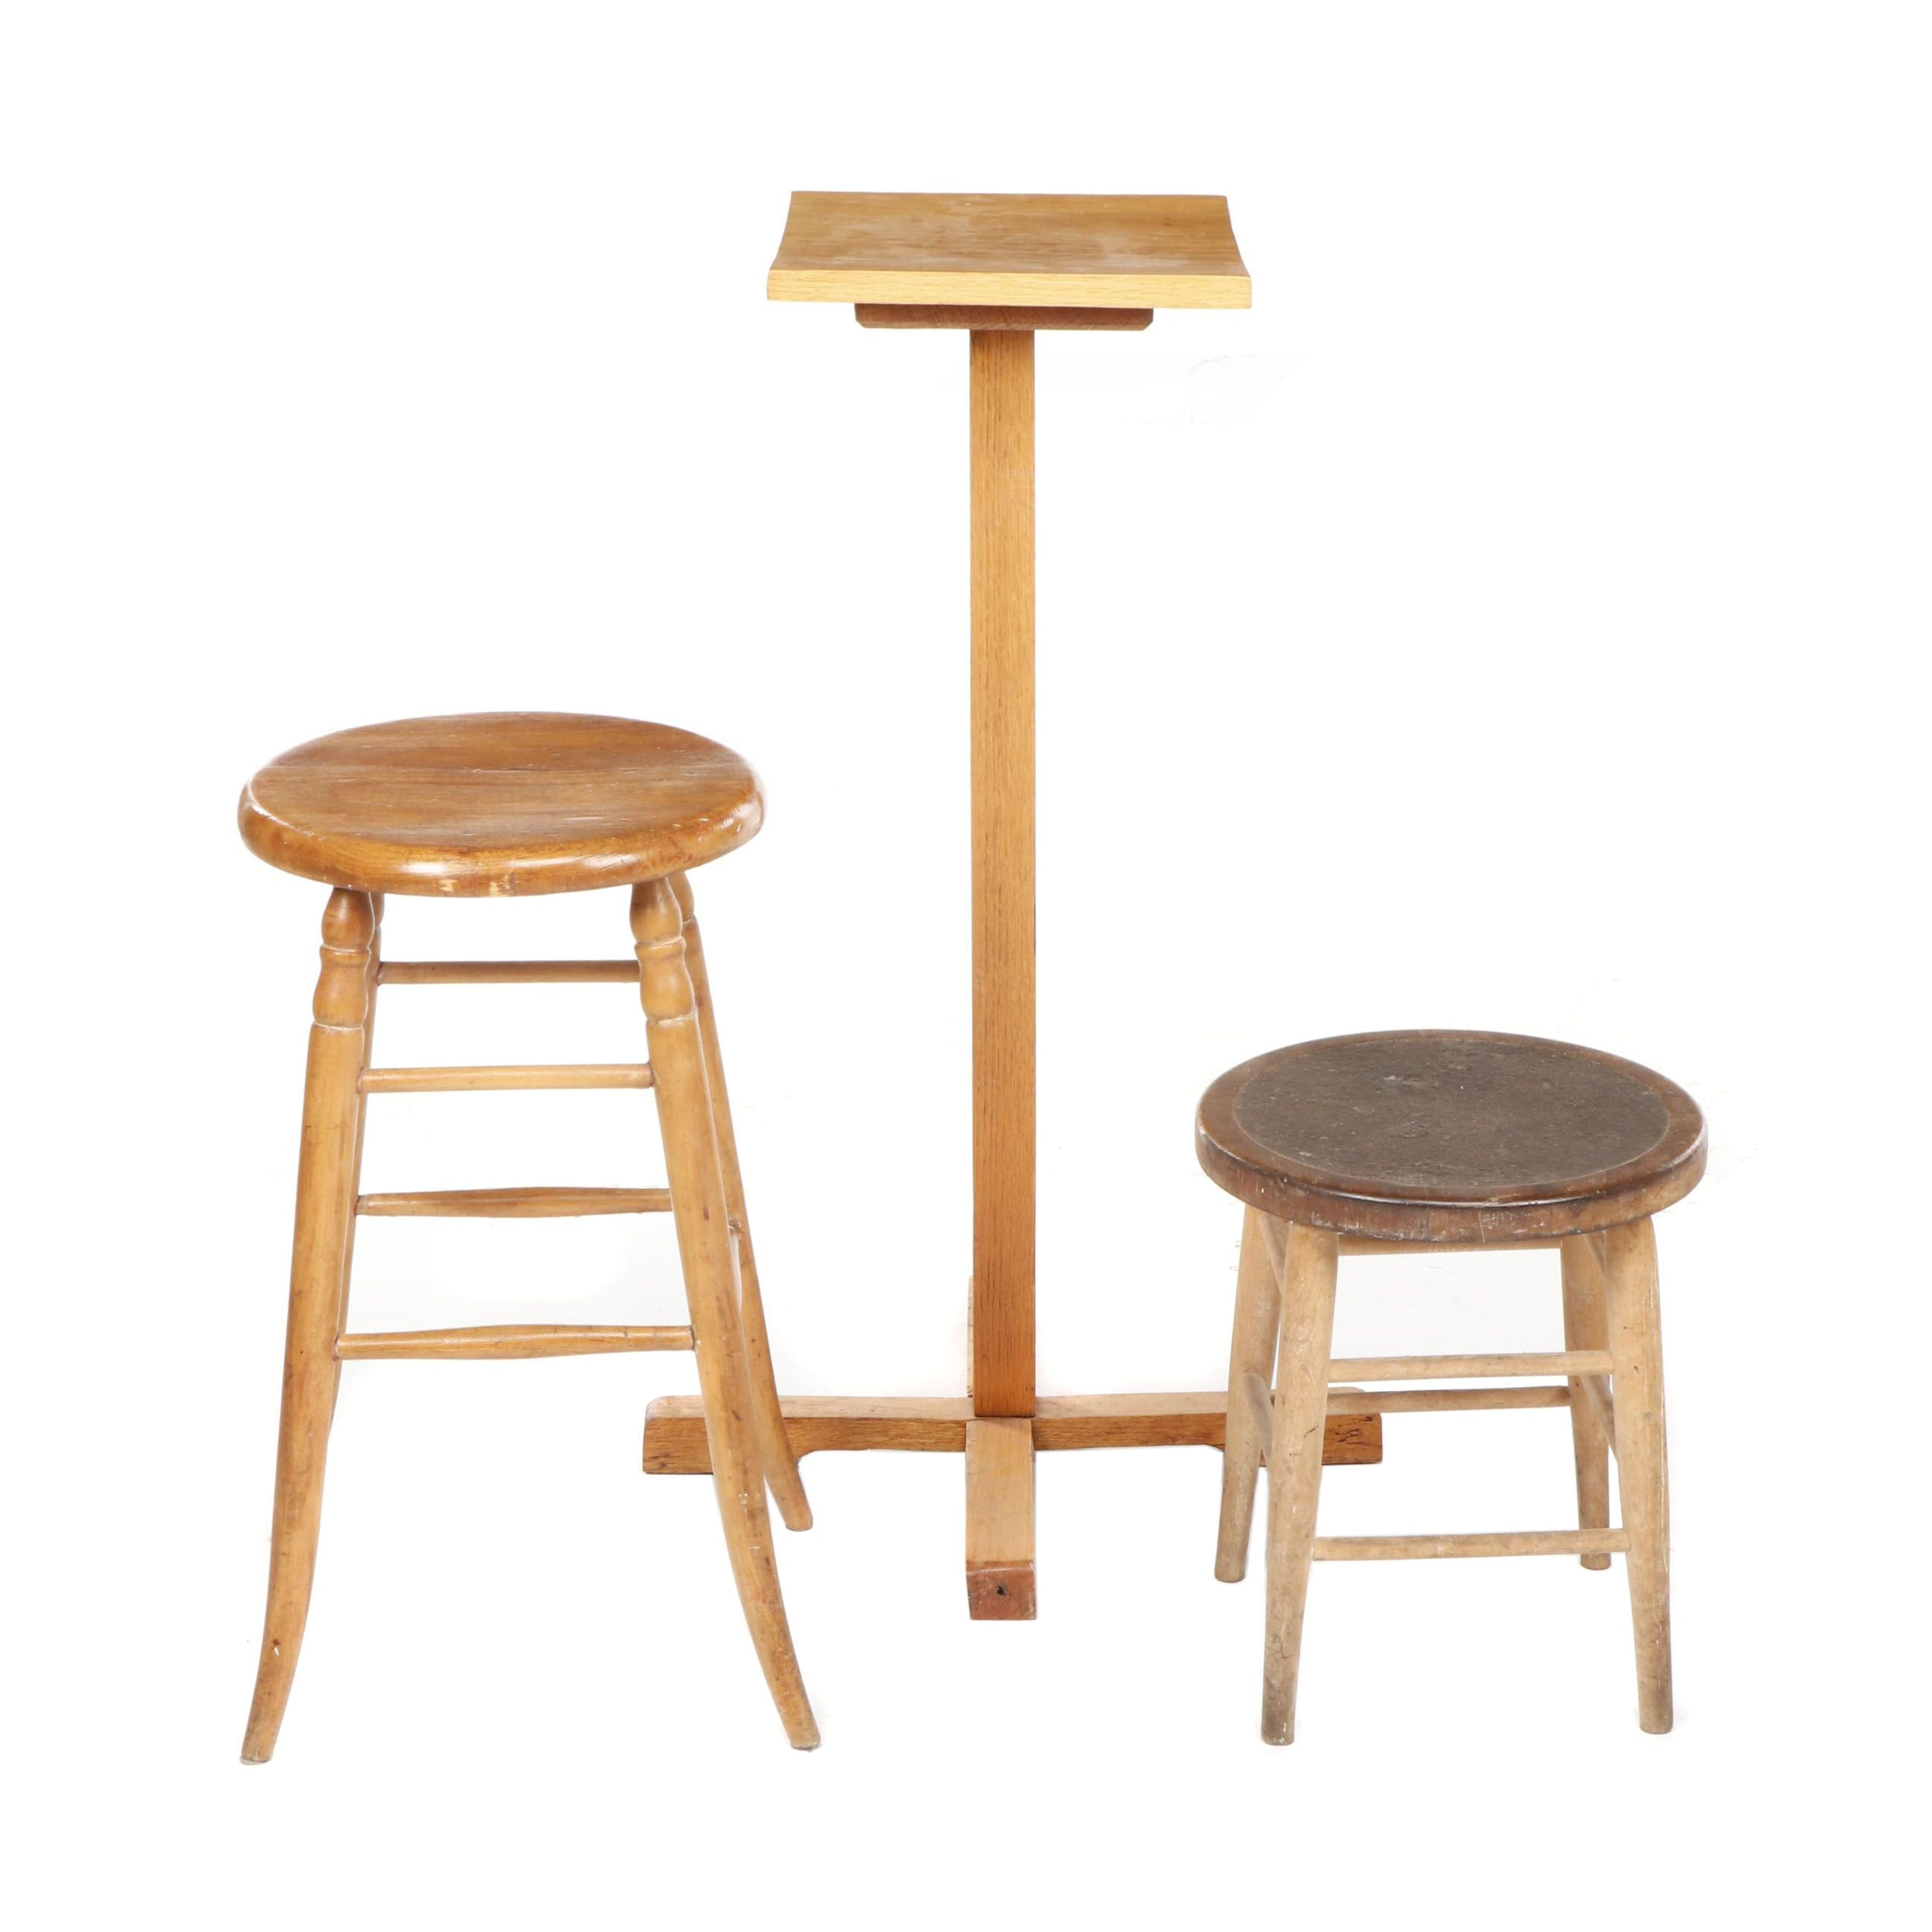 Mid Century Wooden Pedestal, Barstool and Stool